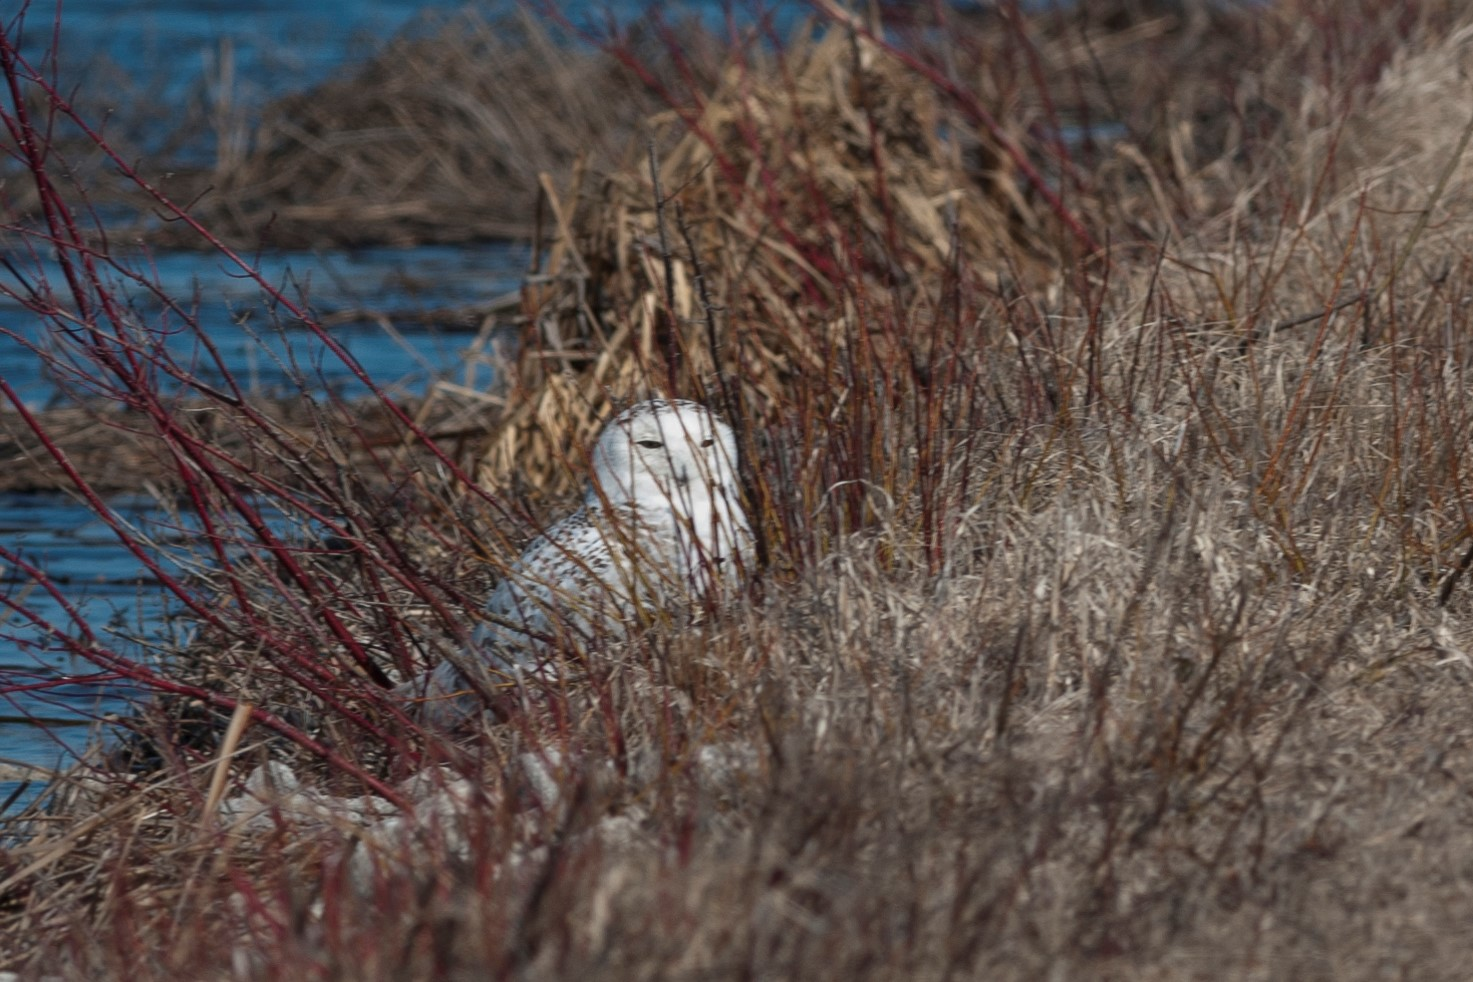 Snowy owls often photographed to death